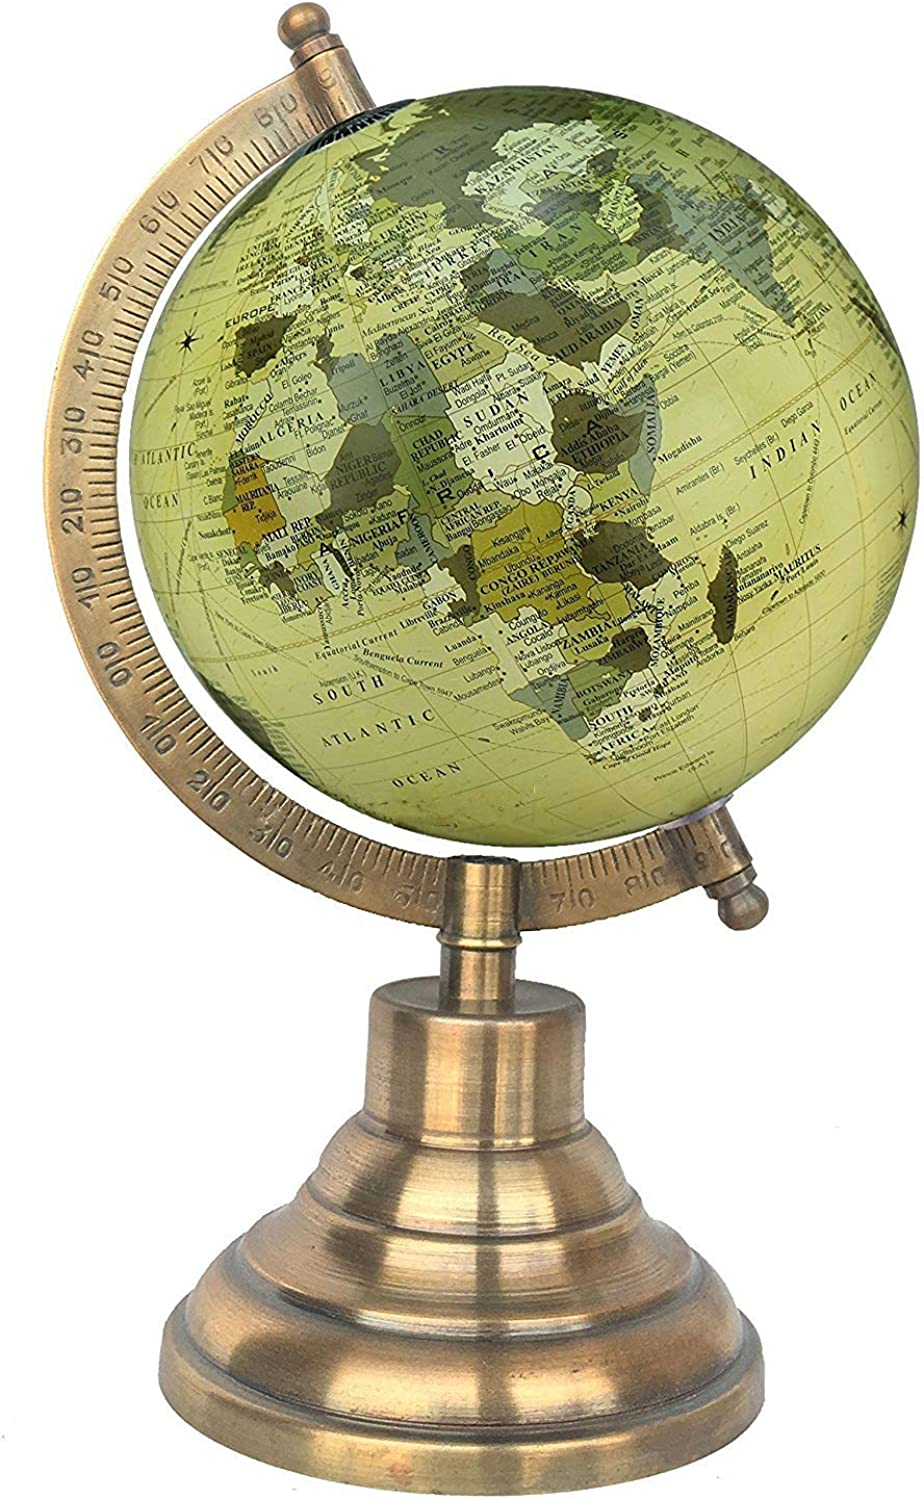 5  Old Beige Educational, Antique Globe with Brass Antique Arc and Base, World Globe, Home Decor, Office Decor, Gift Item by Globes Hub